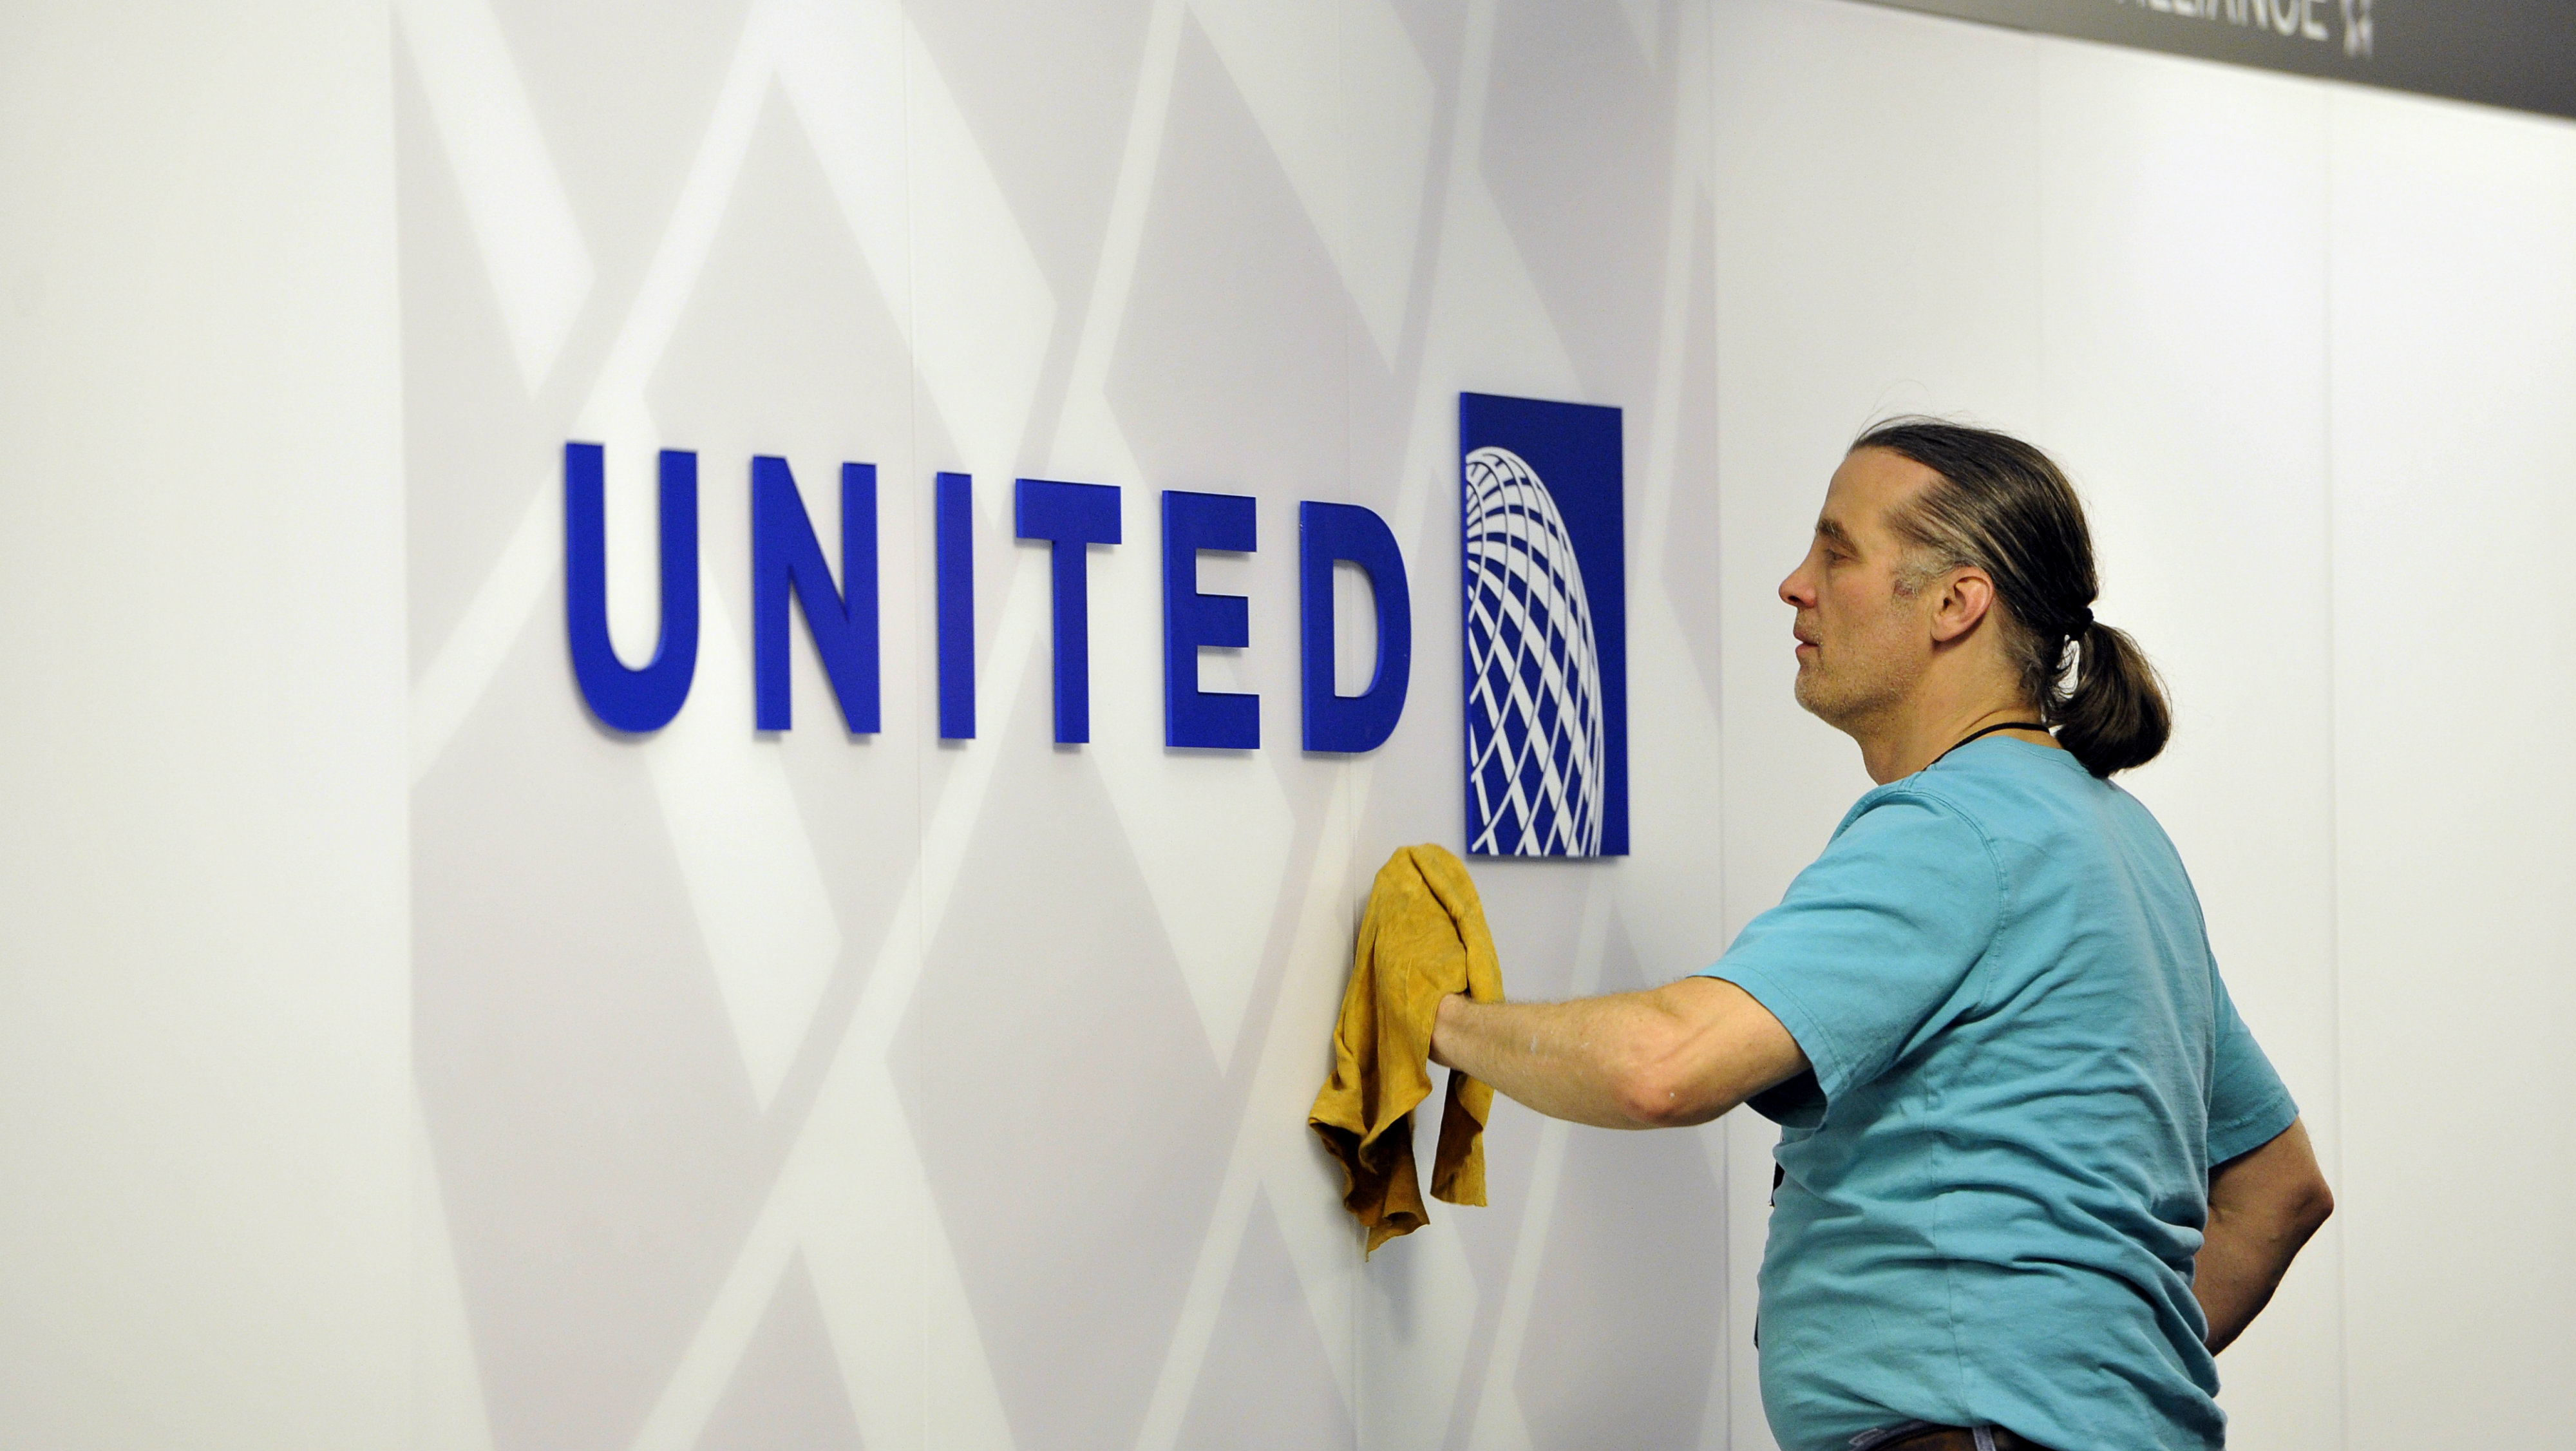 United Airlines image